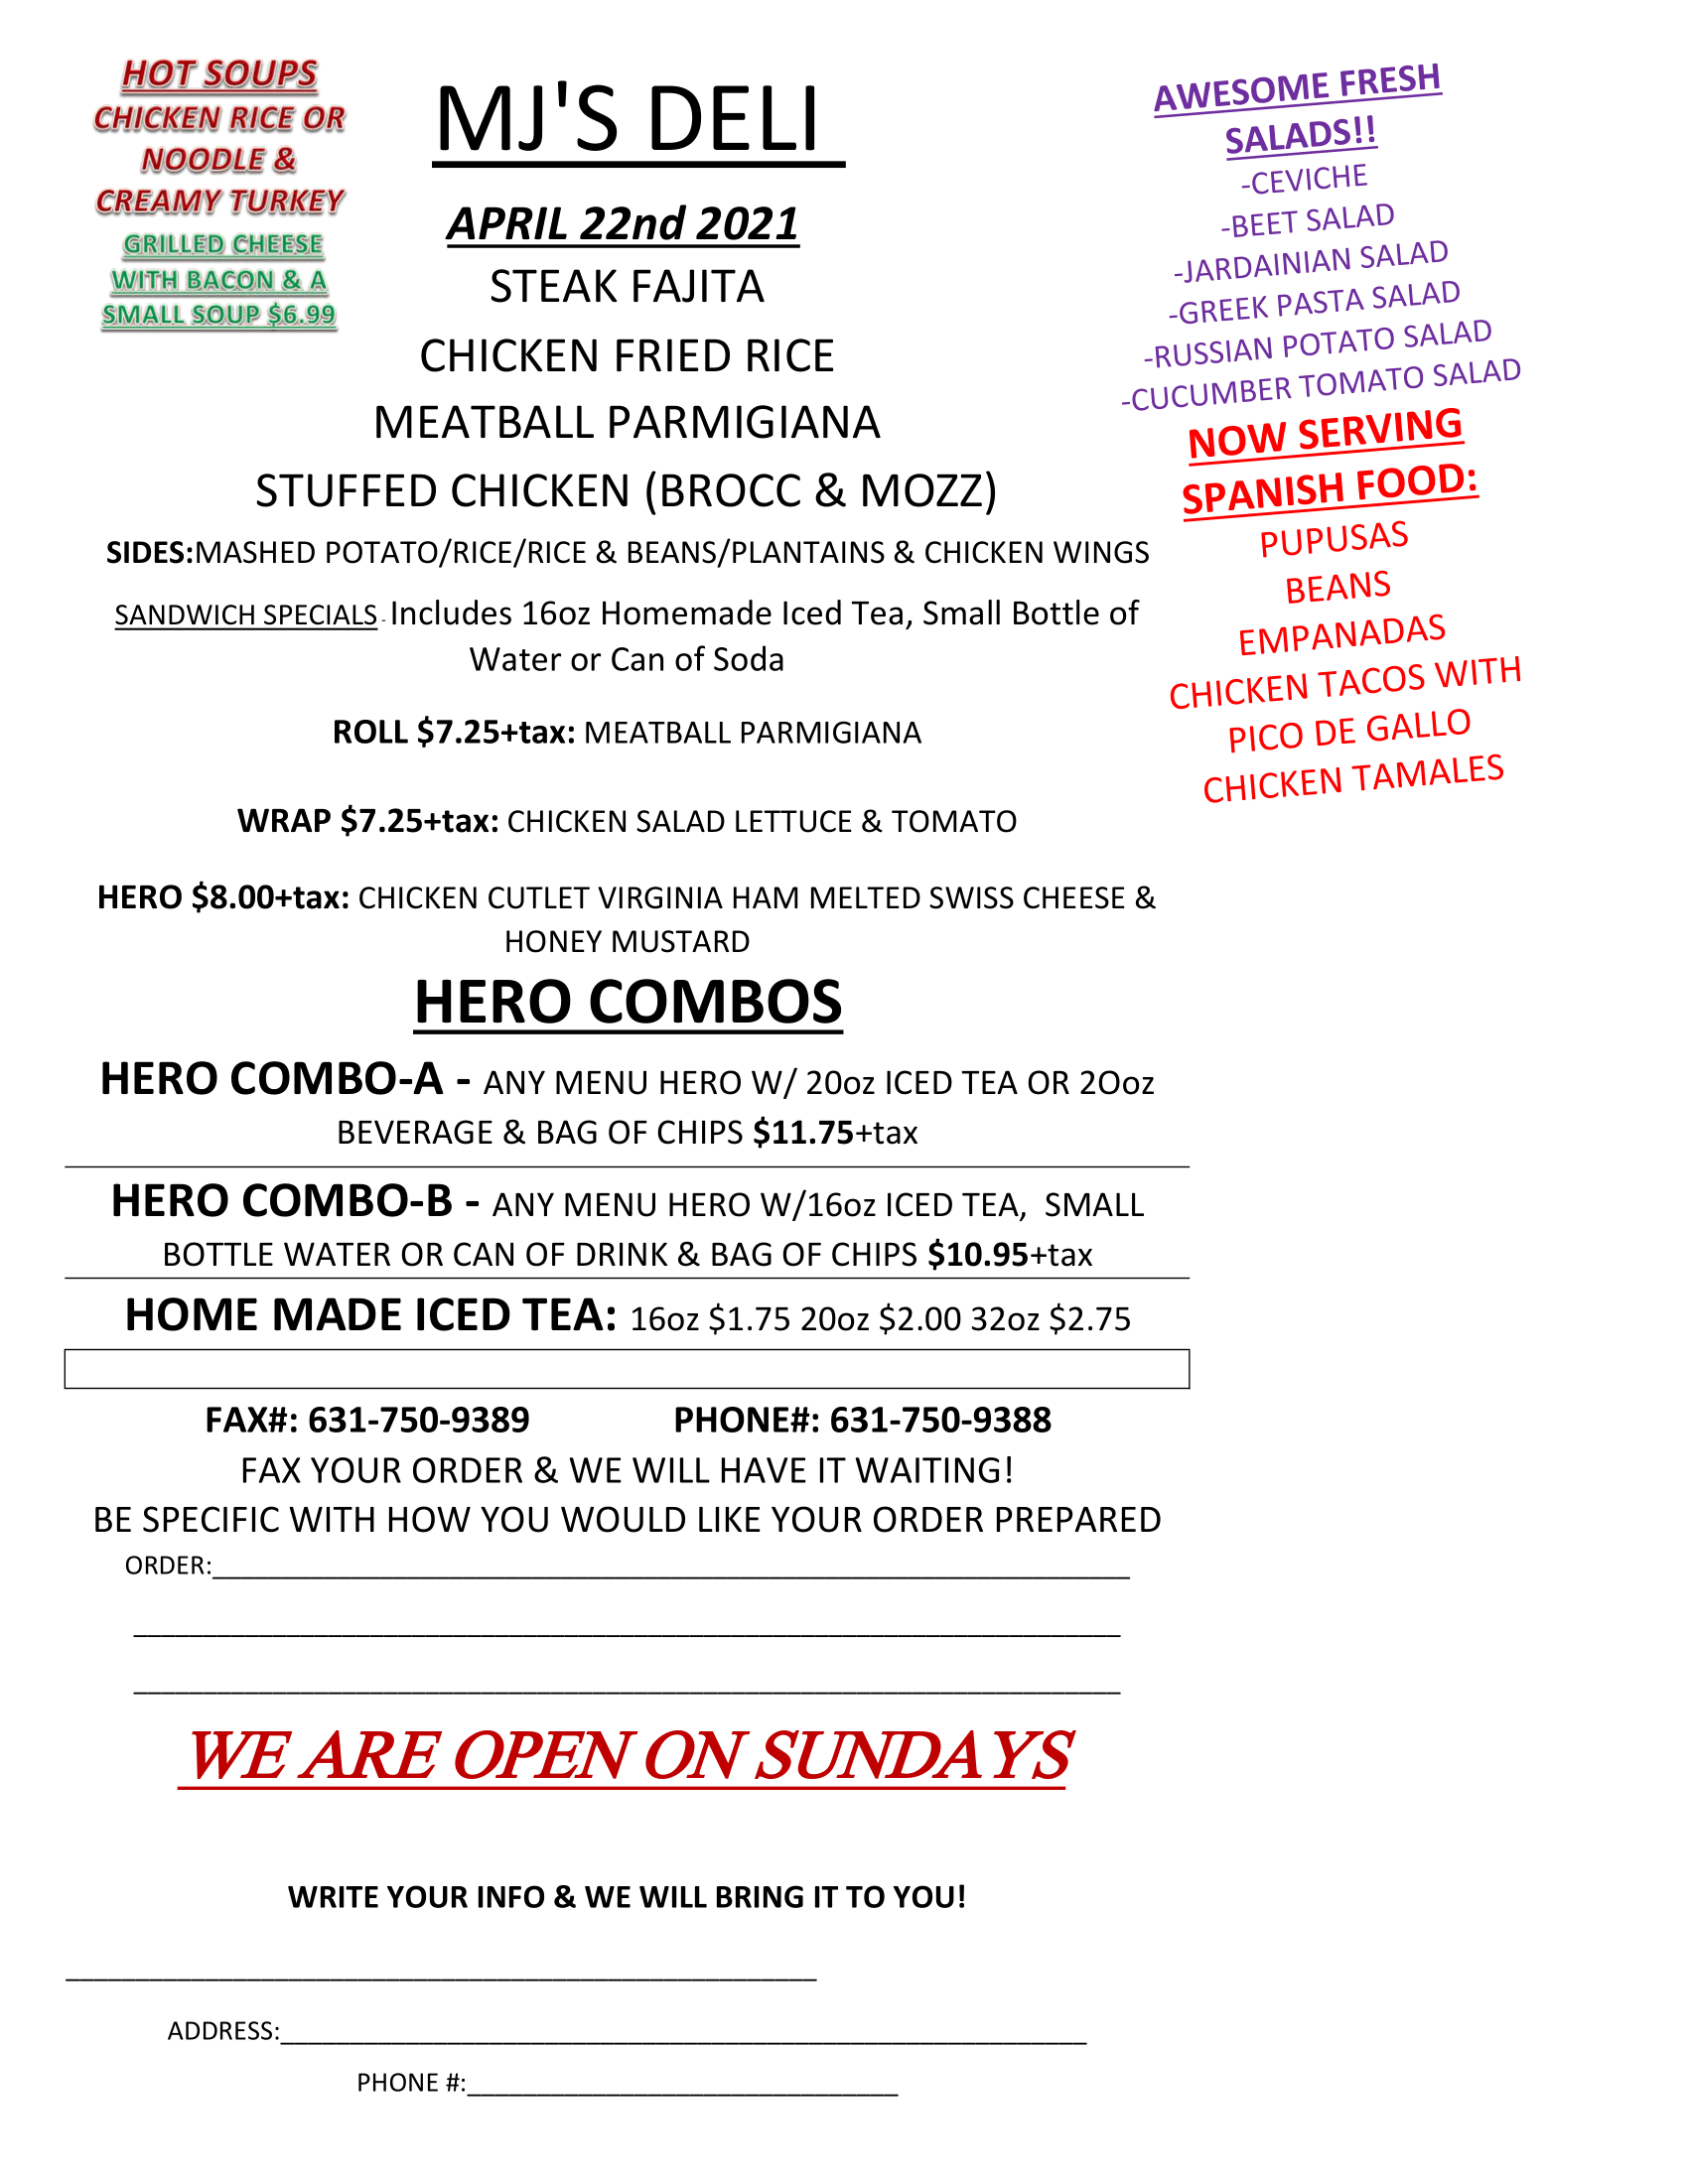 Menu specials for April 22nd. Readable PDF is available by clicking button or image.